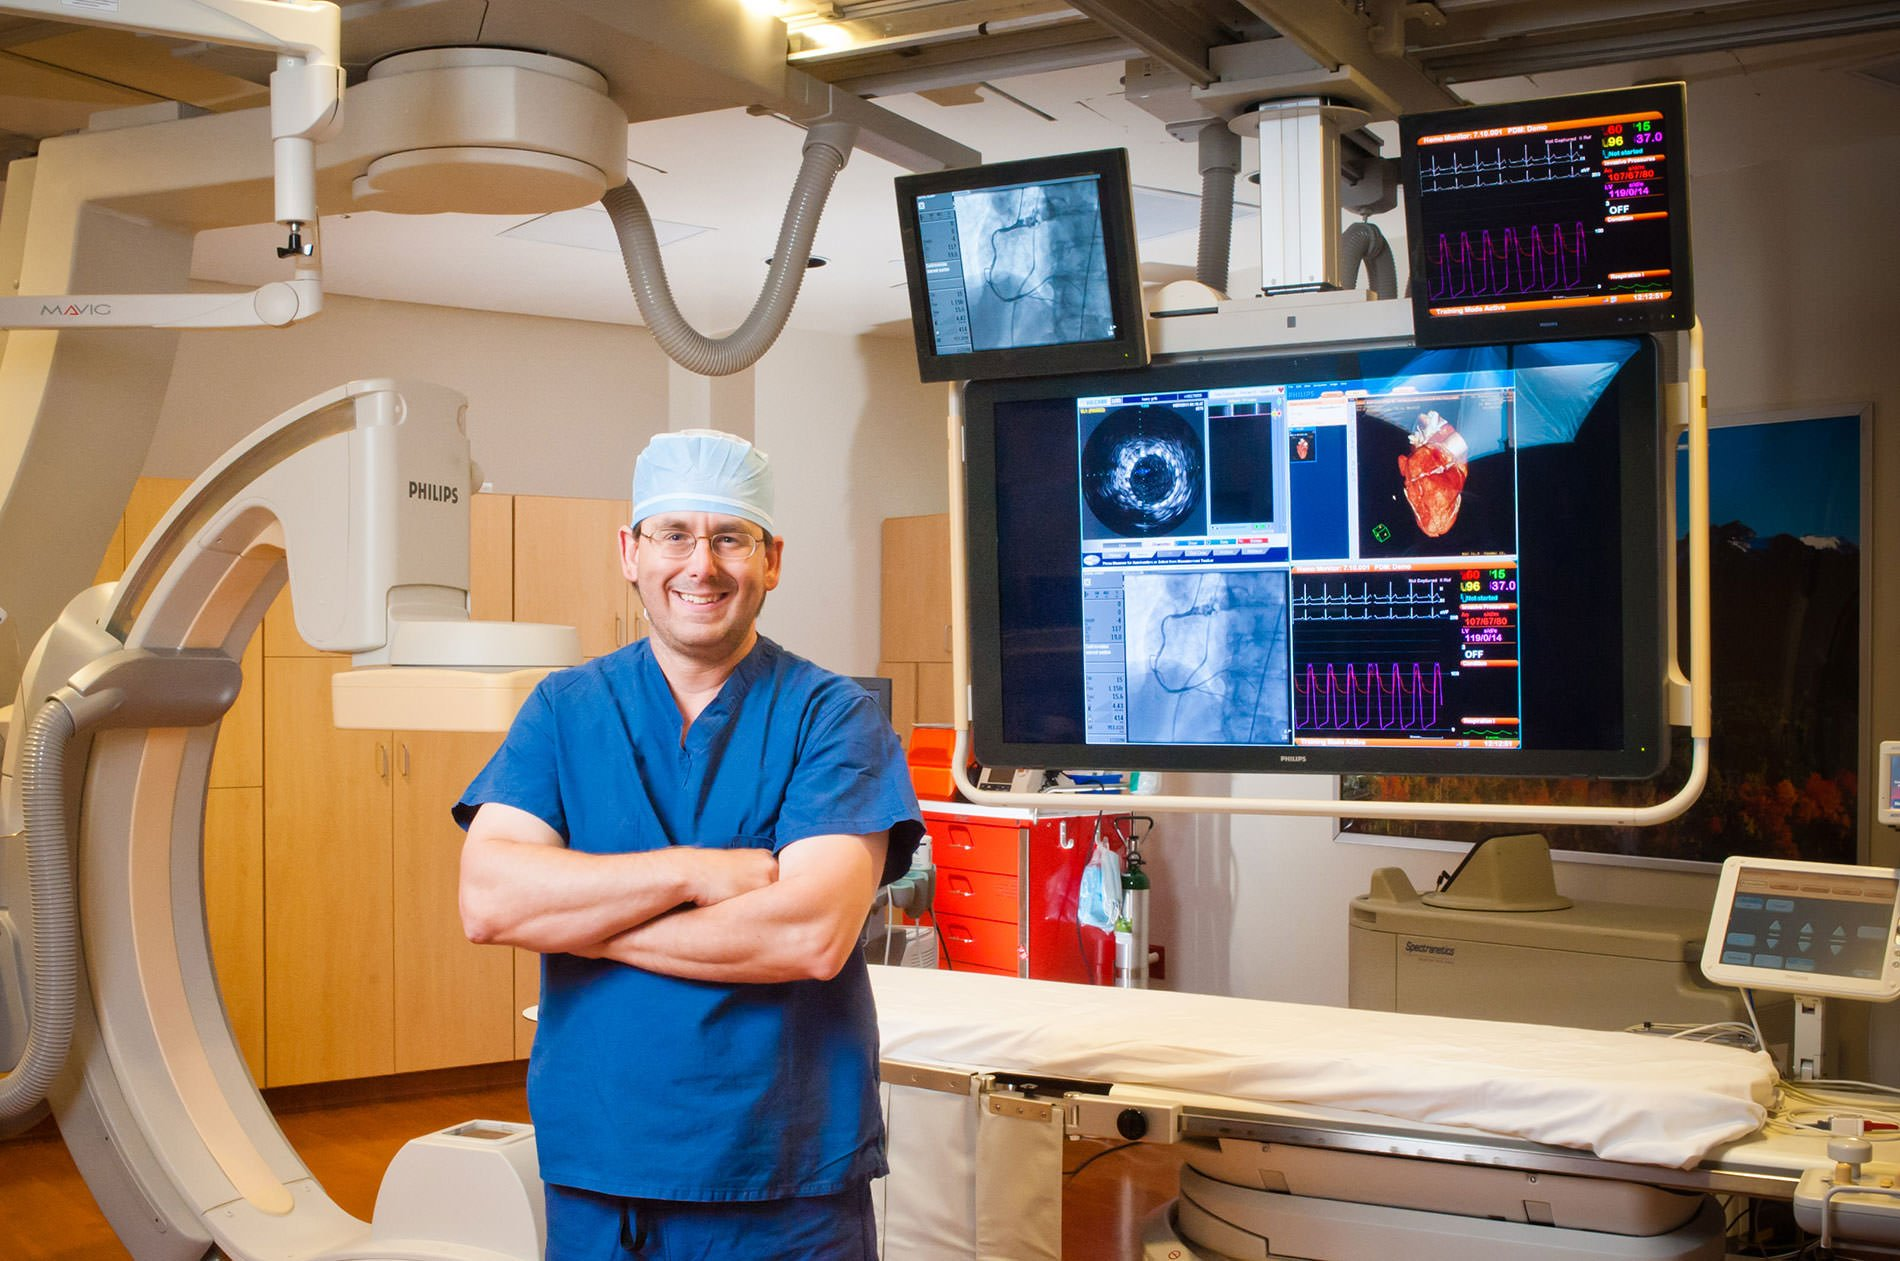 Doctor in a Cath lab posing smiling at the camera for Ogden commercial photography.